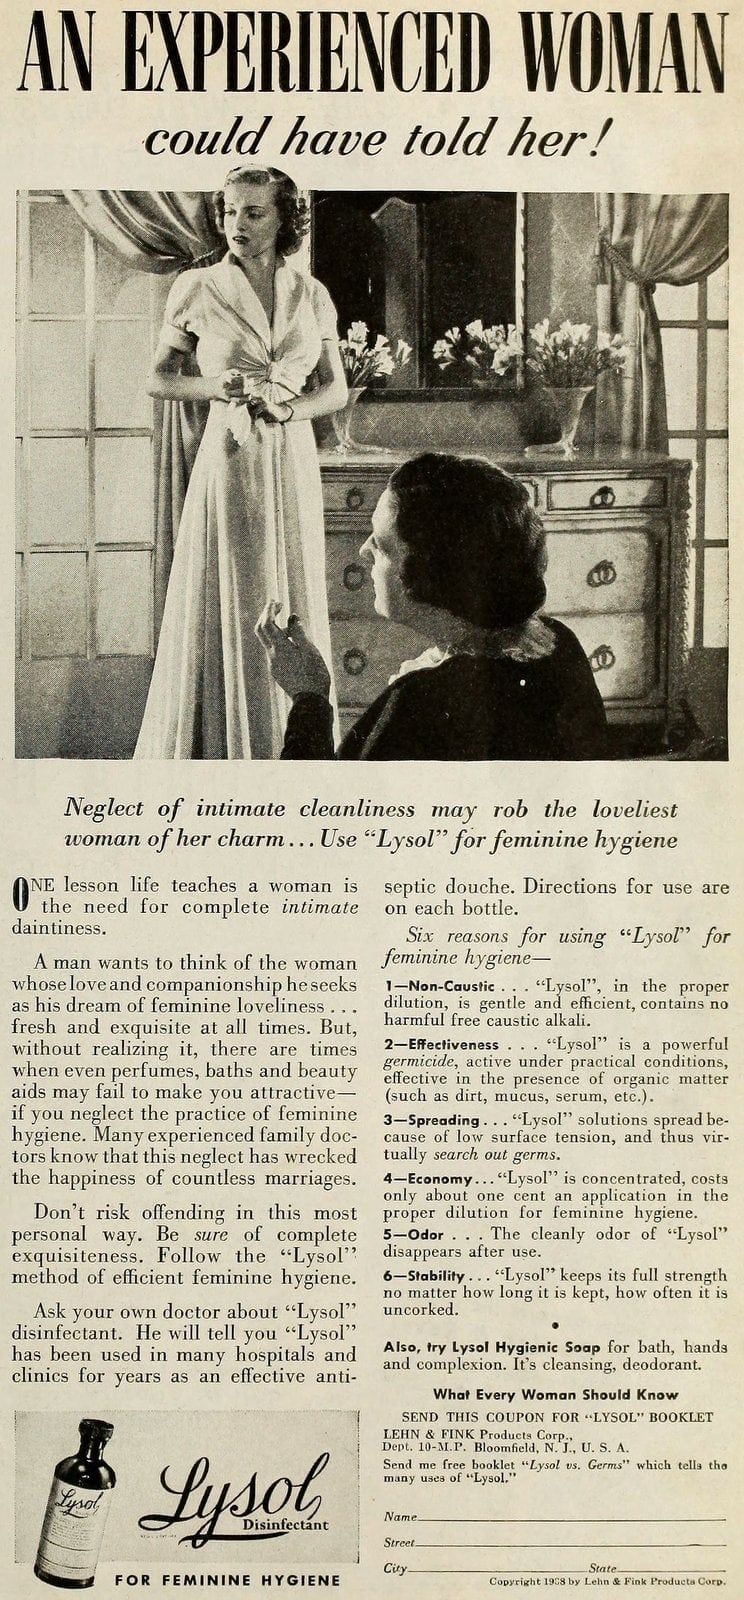 Vintage Lysol douche ads from the 1950s (7)